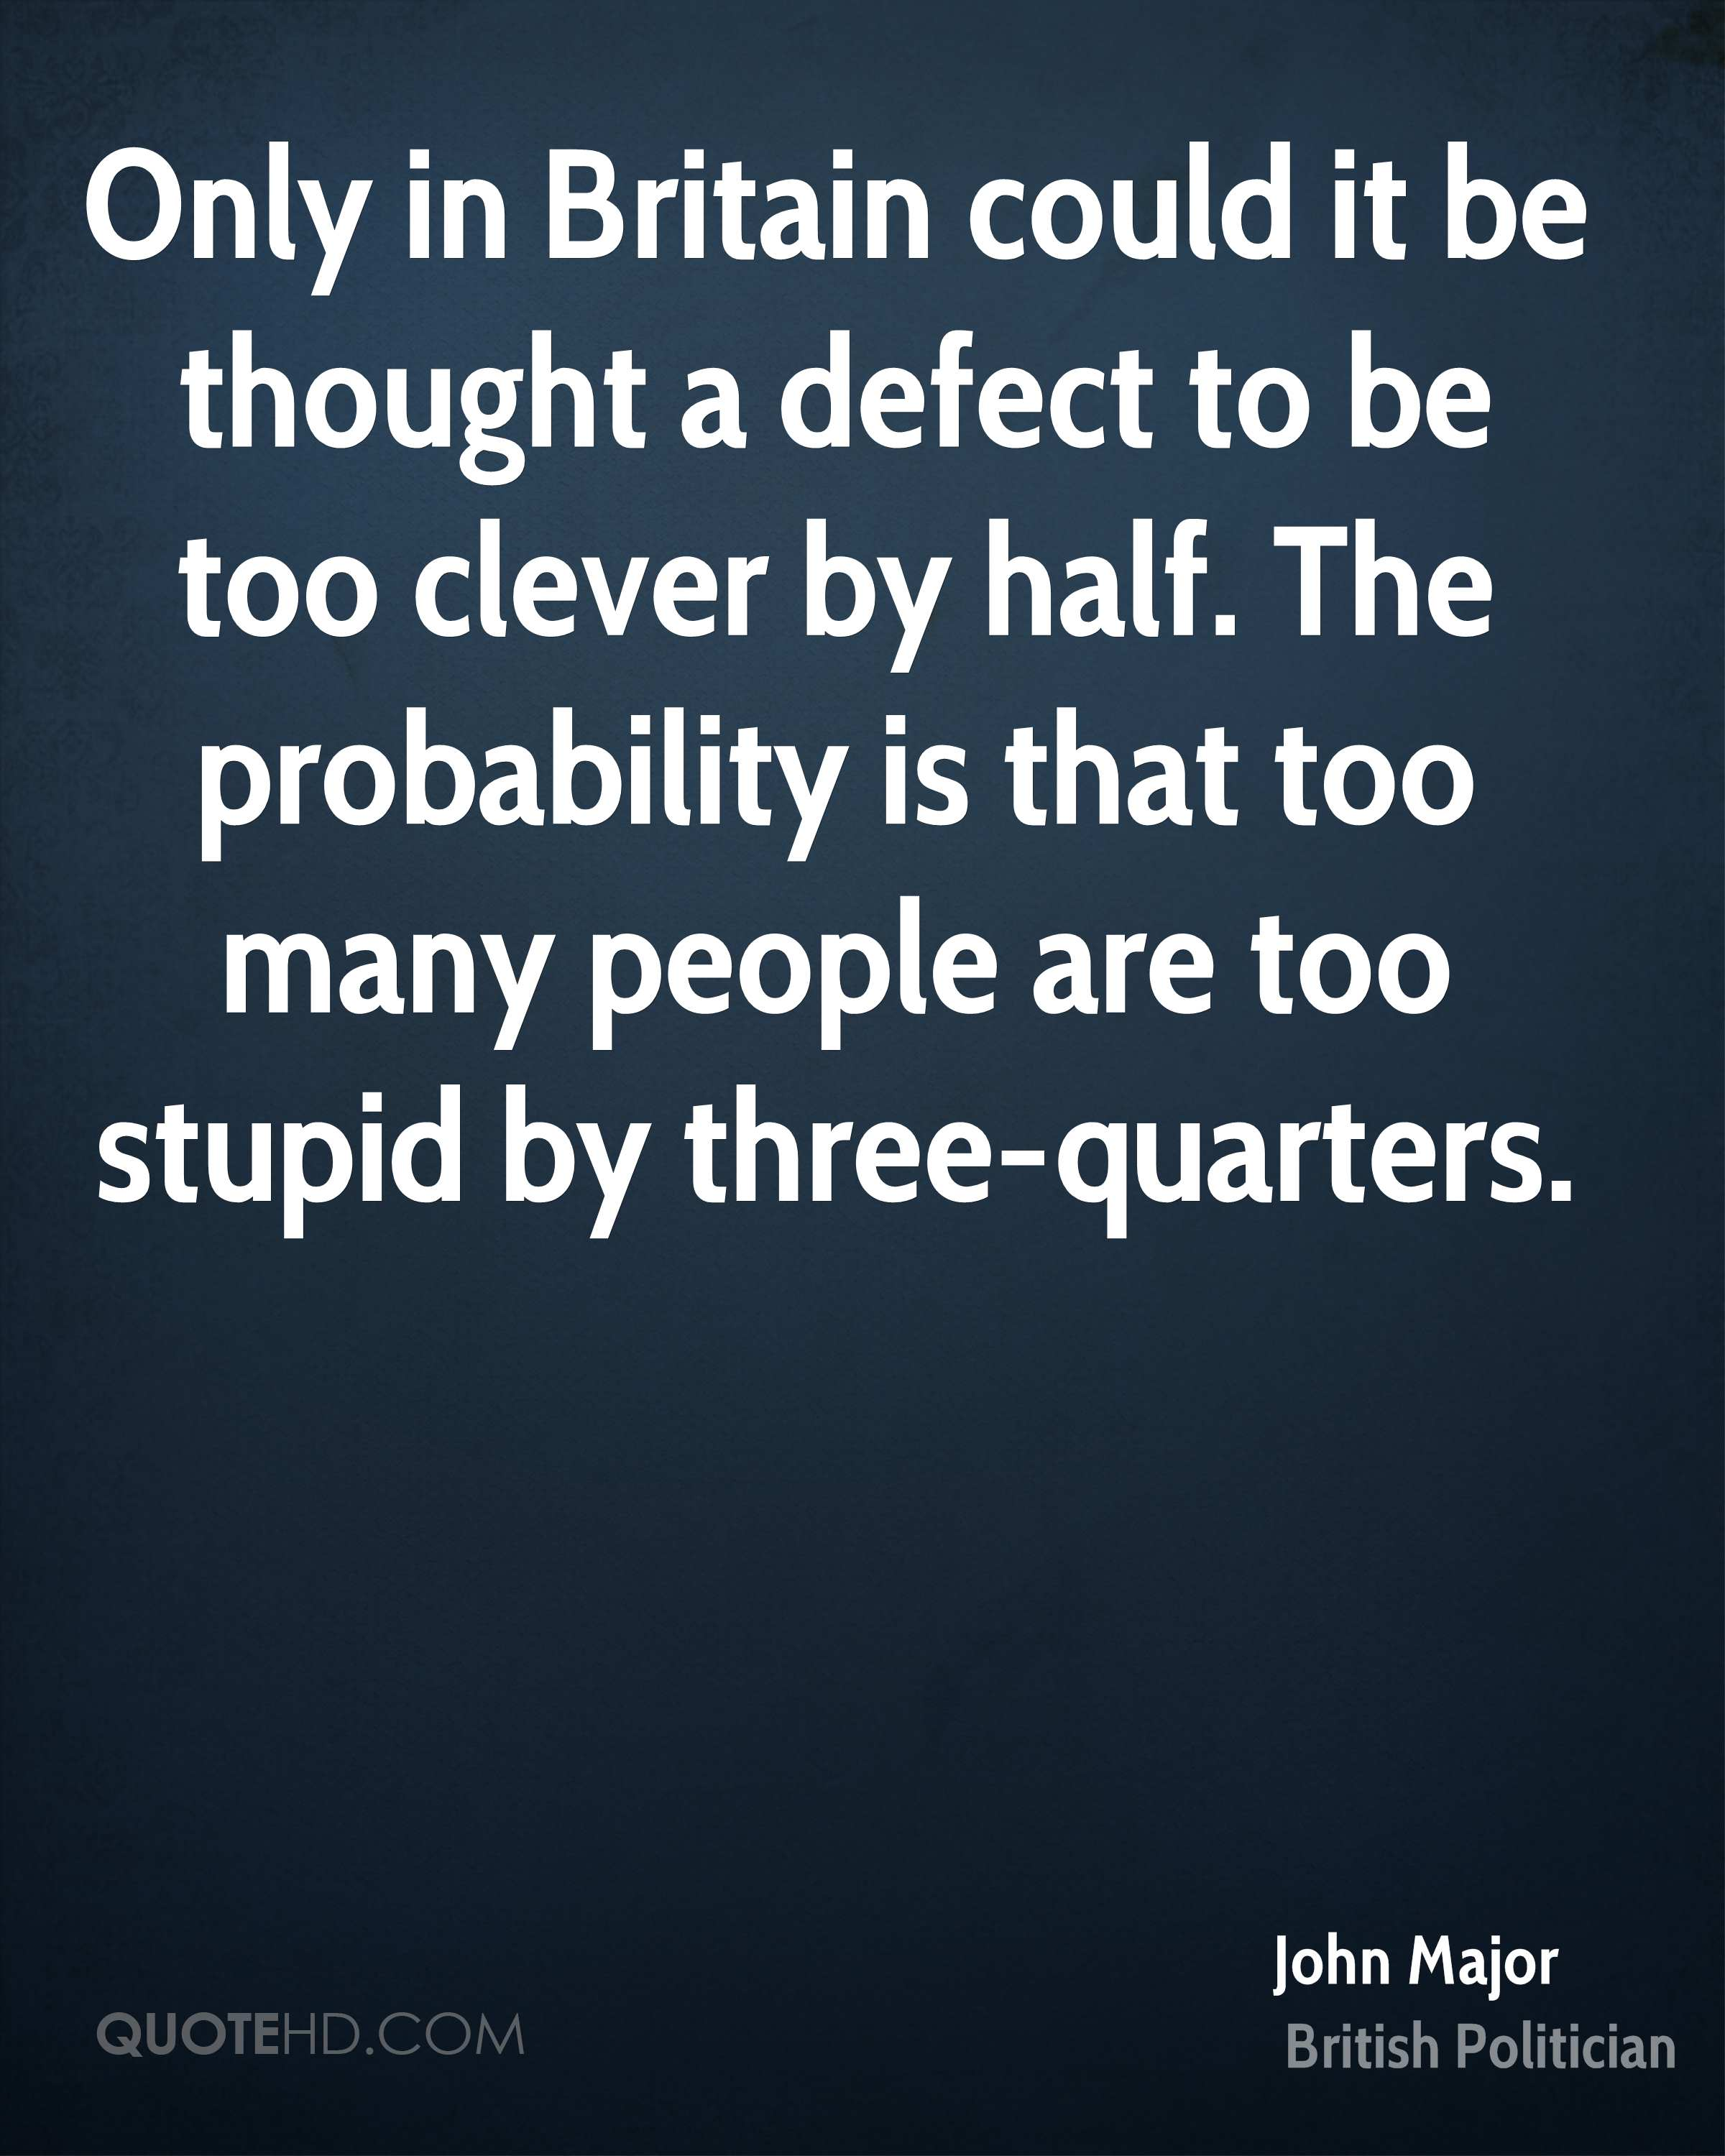 Only in Britain could it be thought a defect to be too clever by half. The probability is that too many people are too stupid by three-quarters.